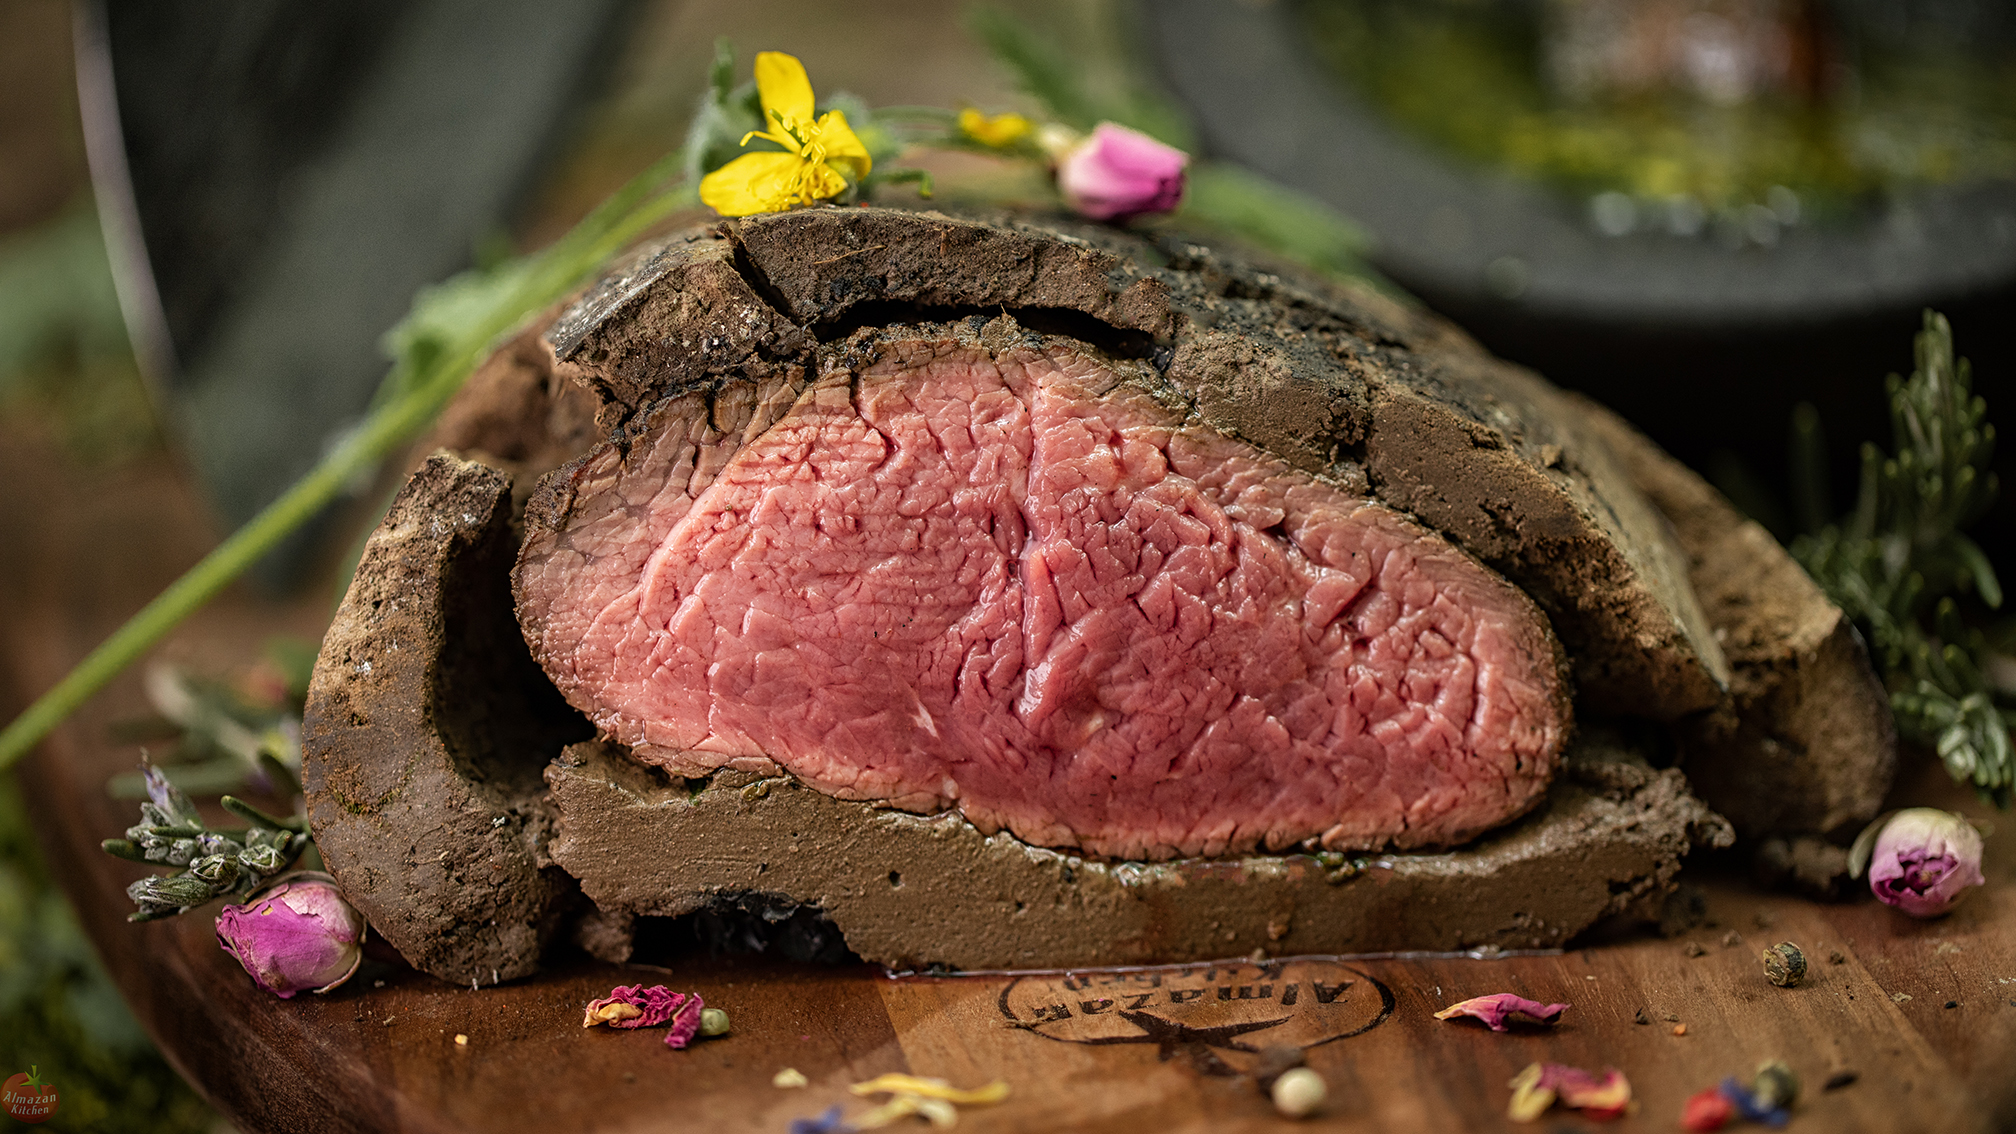 Baking Meat Packed in Clay - Most Perfect Steak?